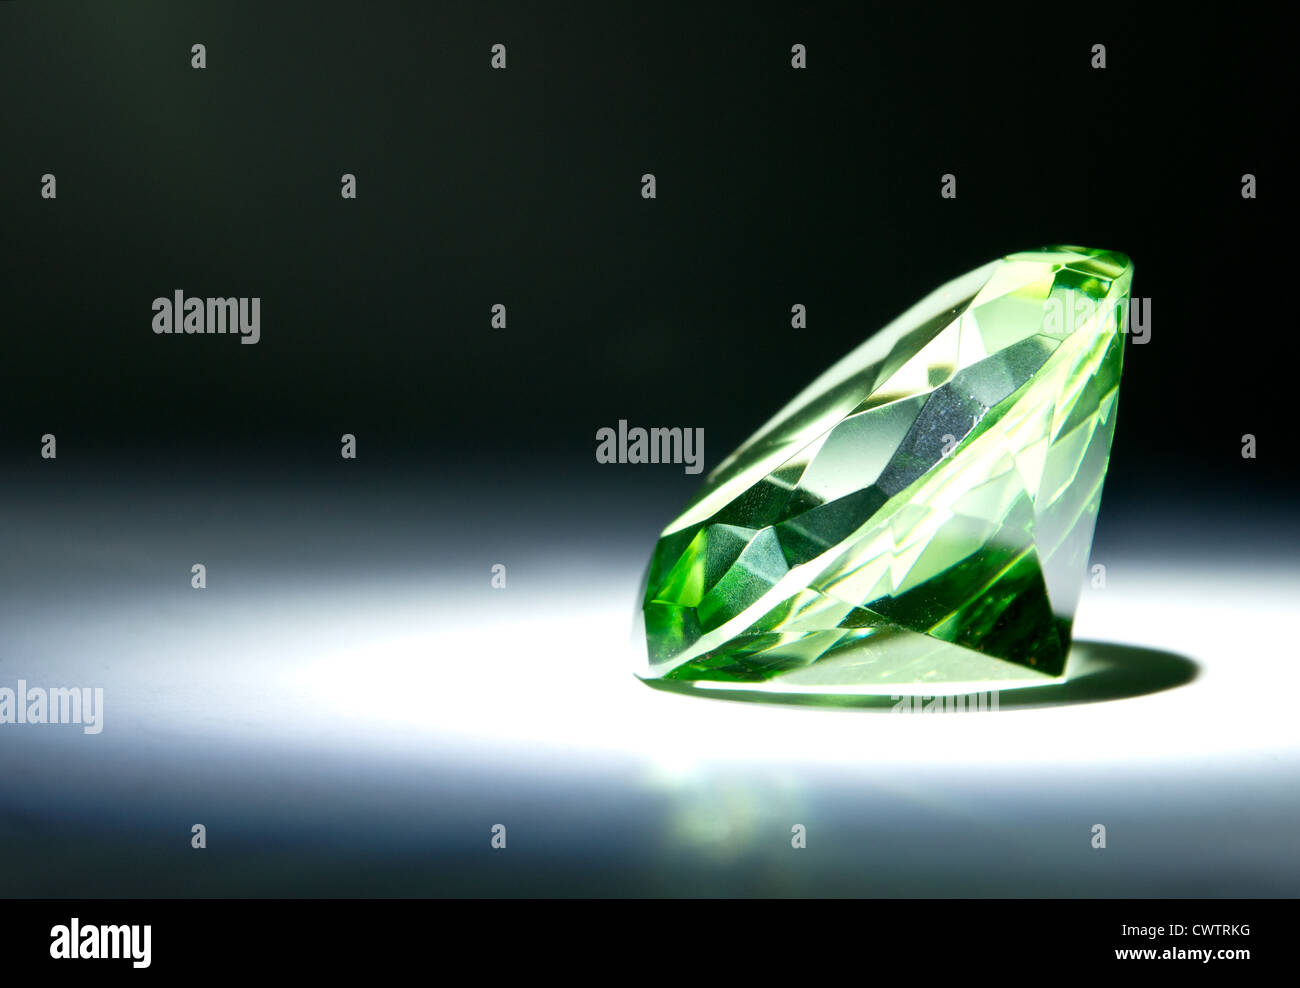 Faceted round cut green gemstone painted with light - Stock Image